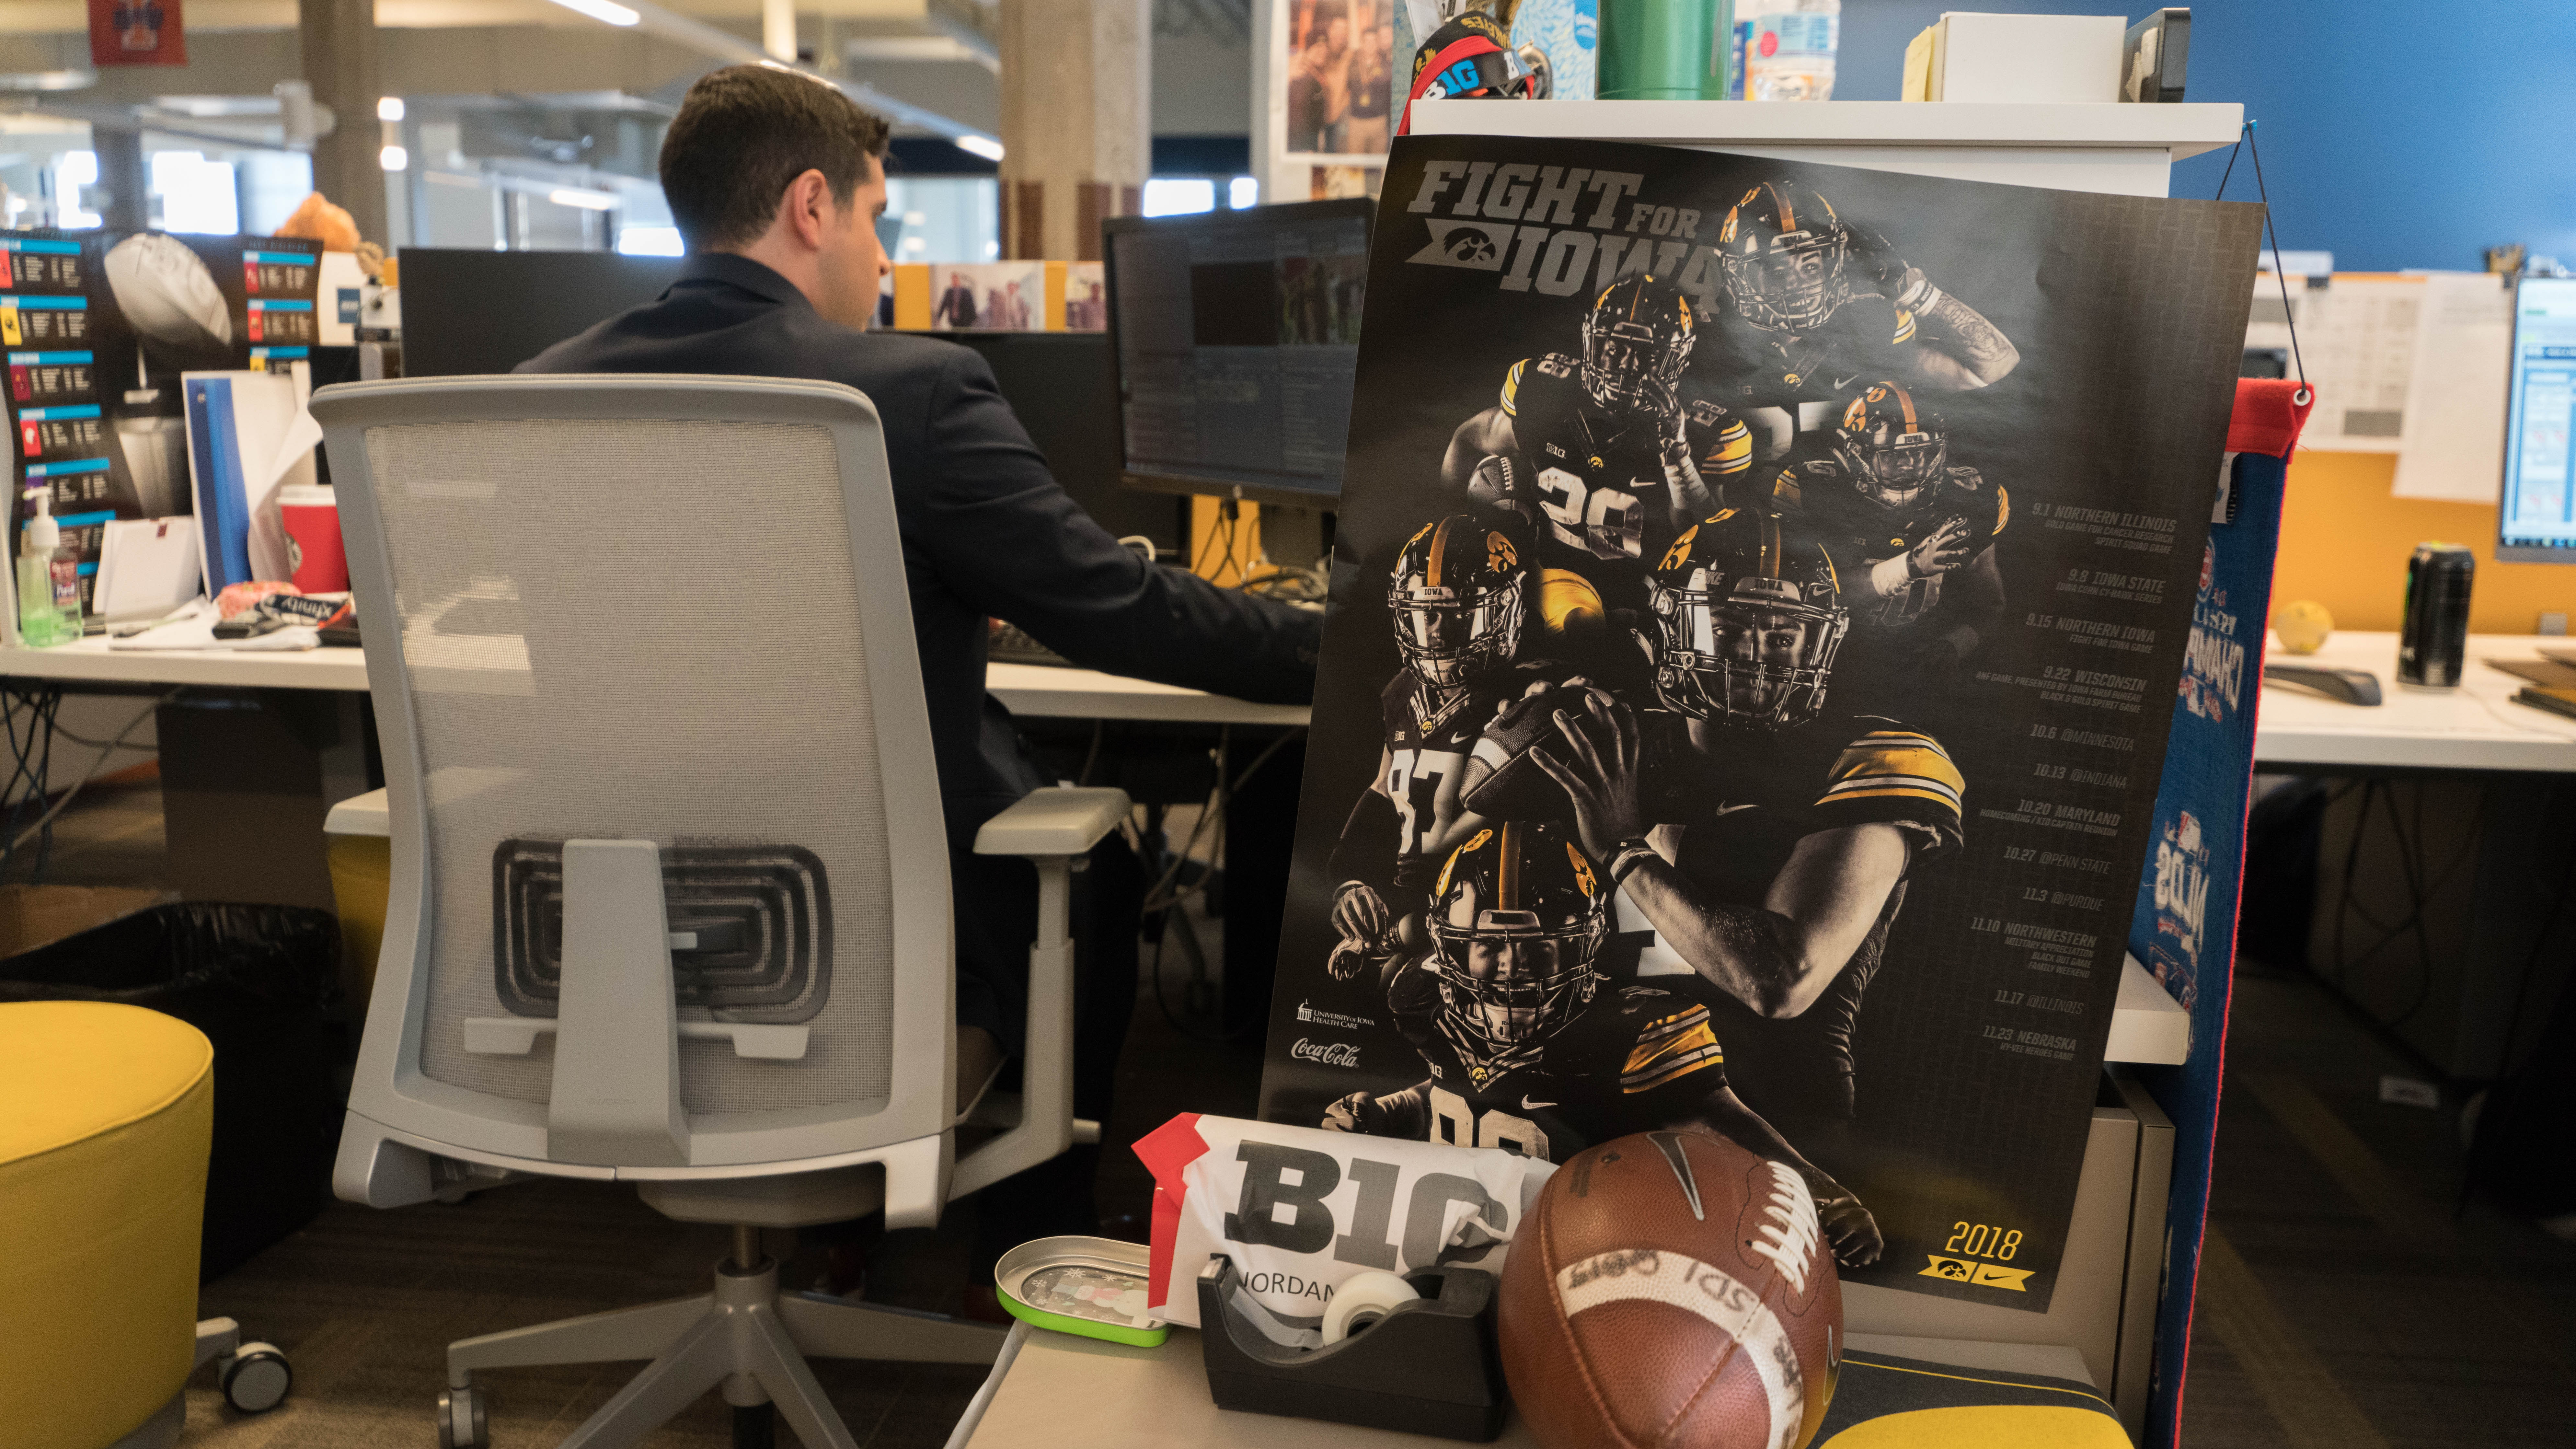 University of Iowa graduate Jordan Loperena at his desk, which features a university of iowa football poster